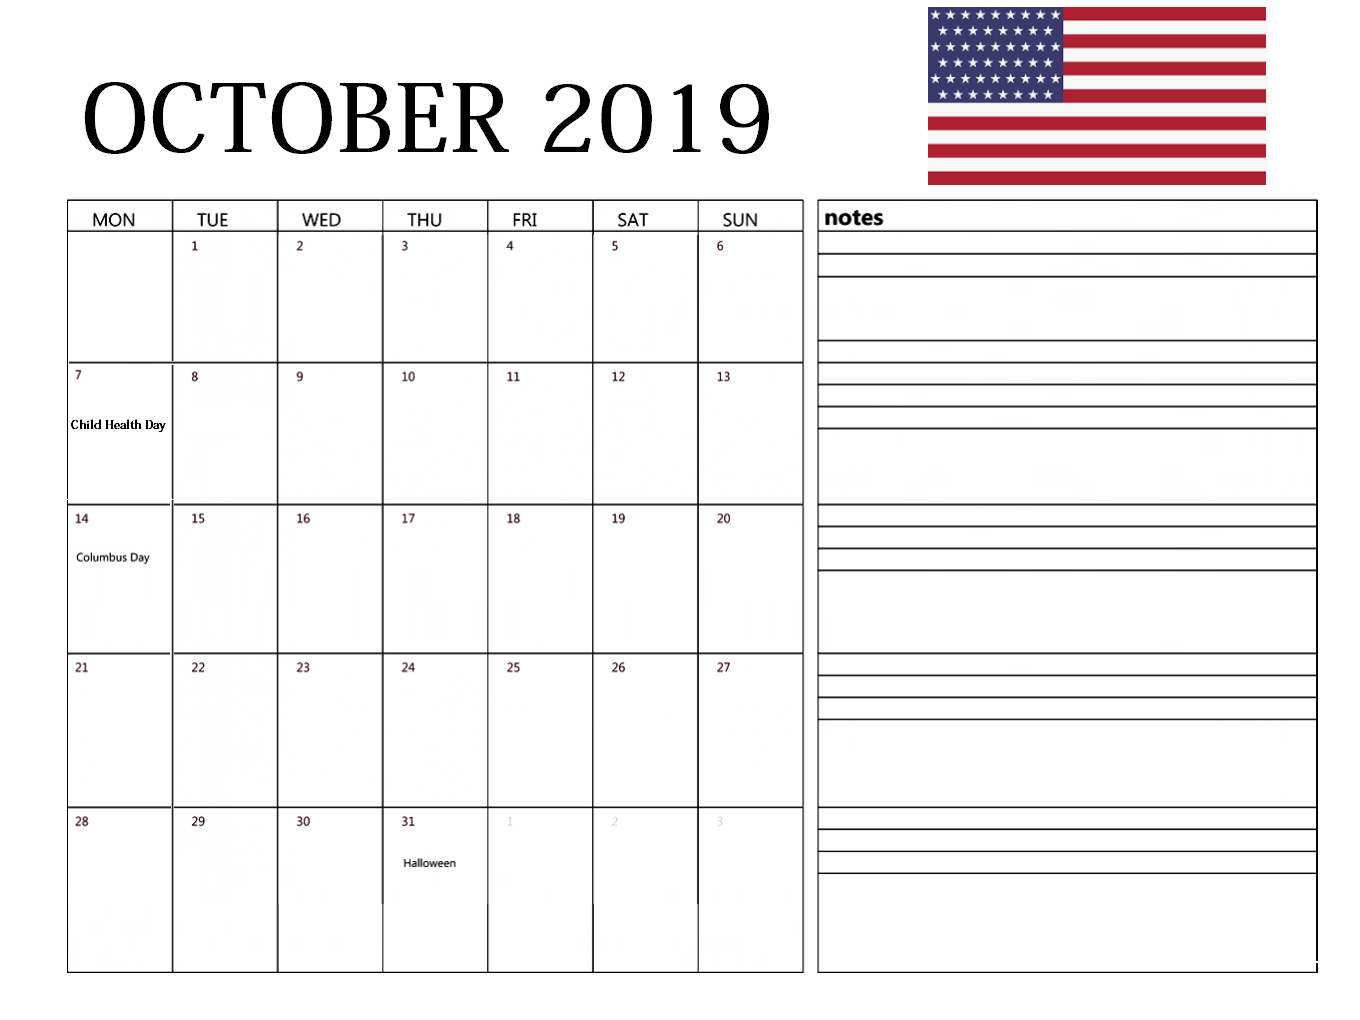 USA October 2019 Holidays Calendar